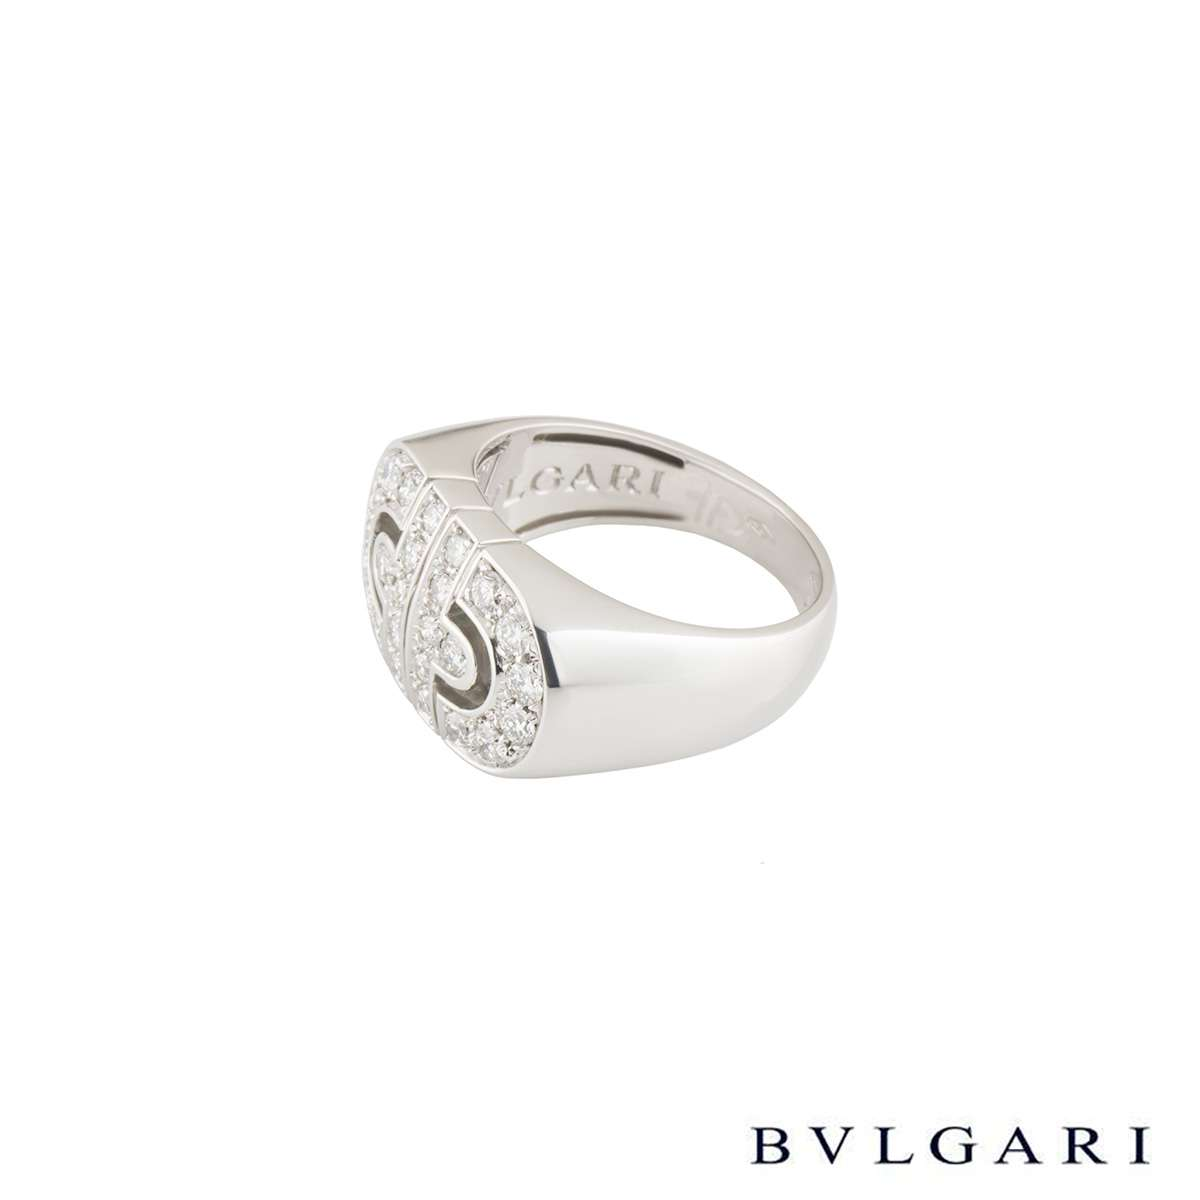 Bvlgari White Gold Diamond Parentesi Ring Size 53 AN853699